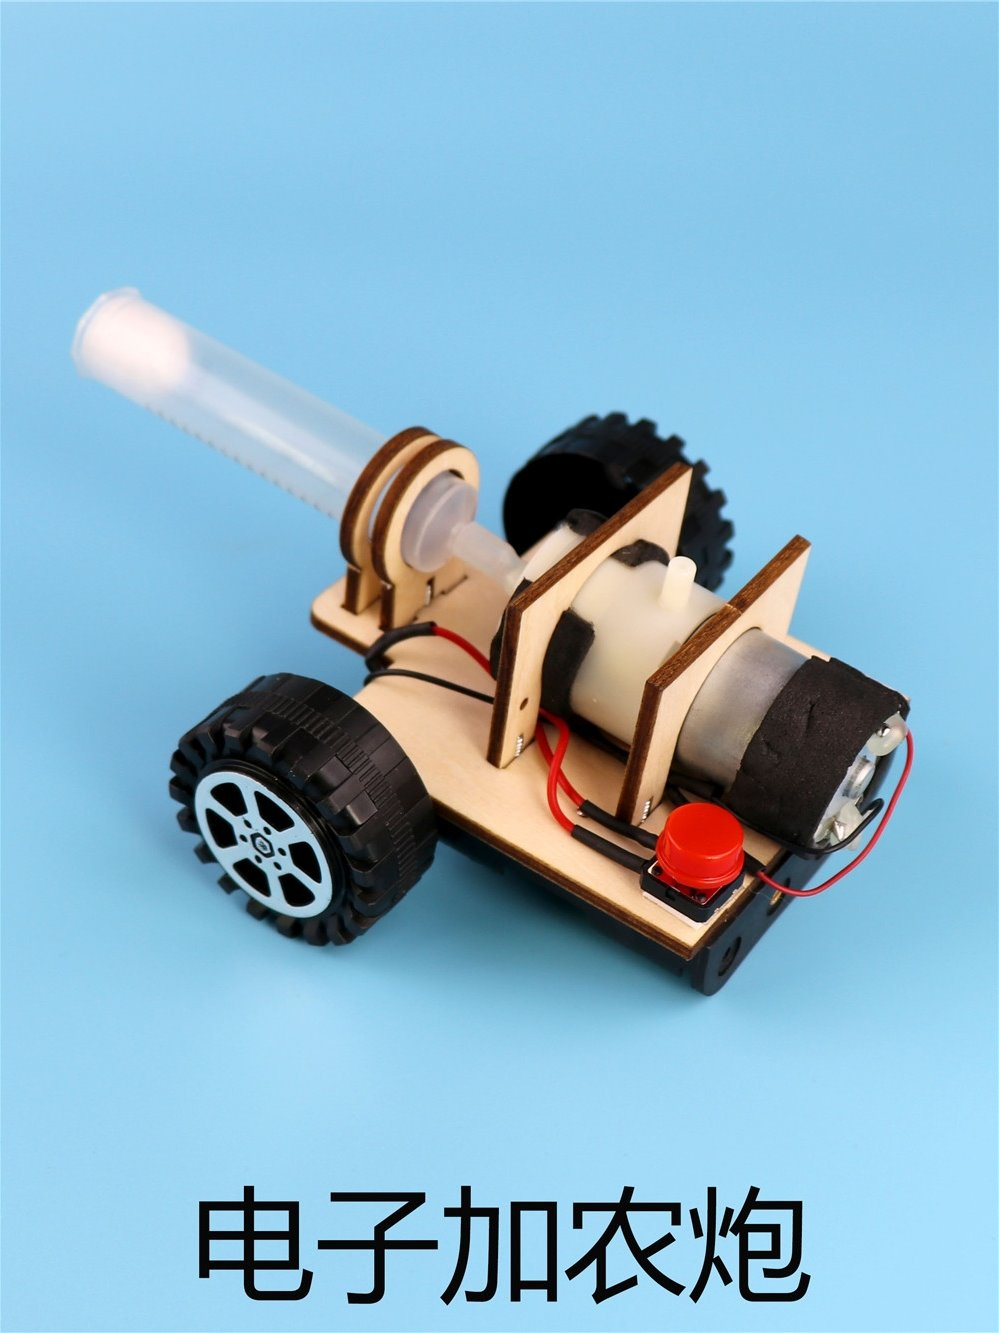 . Electronic cannon DIY homemade technology small handmade gun Science Experiment Toy pneumatic launcher ste